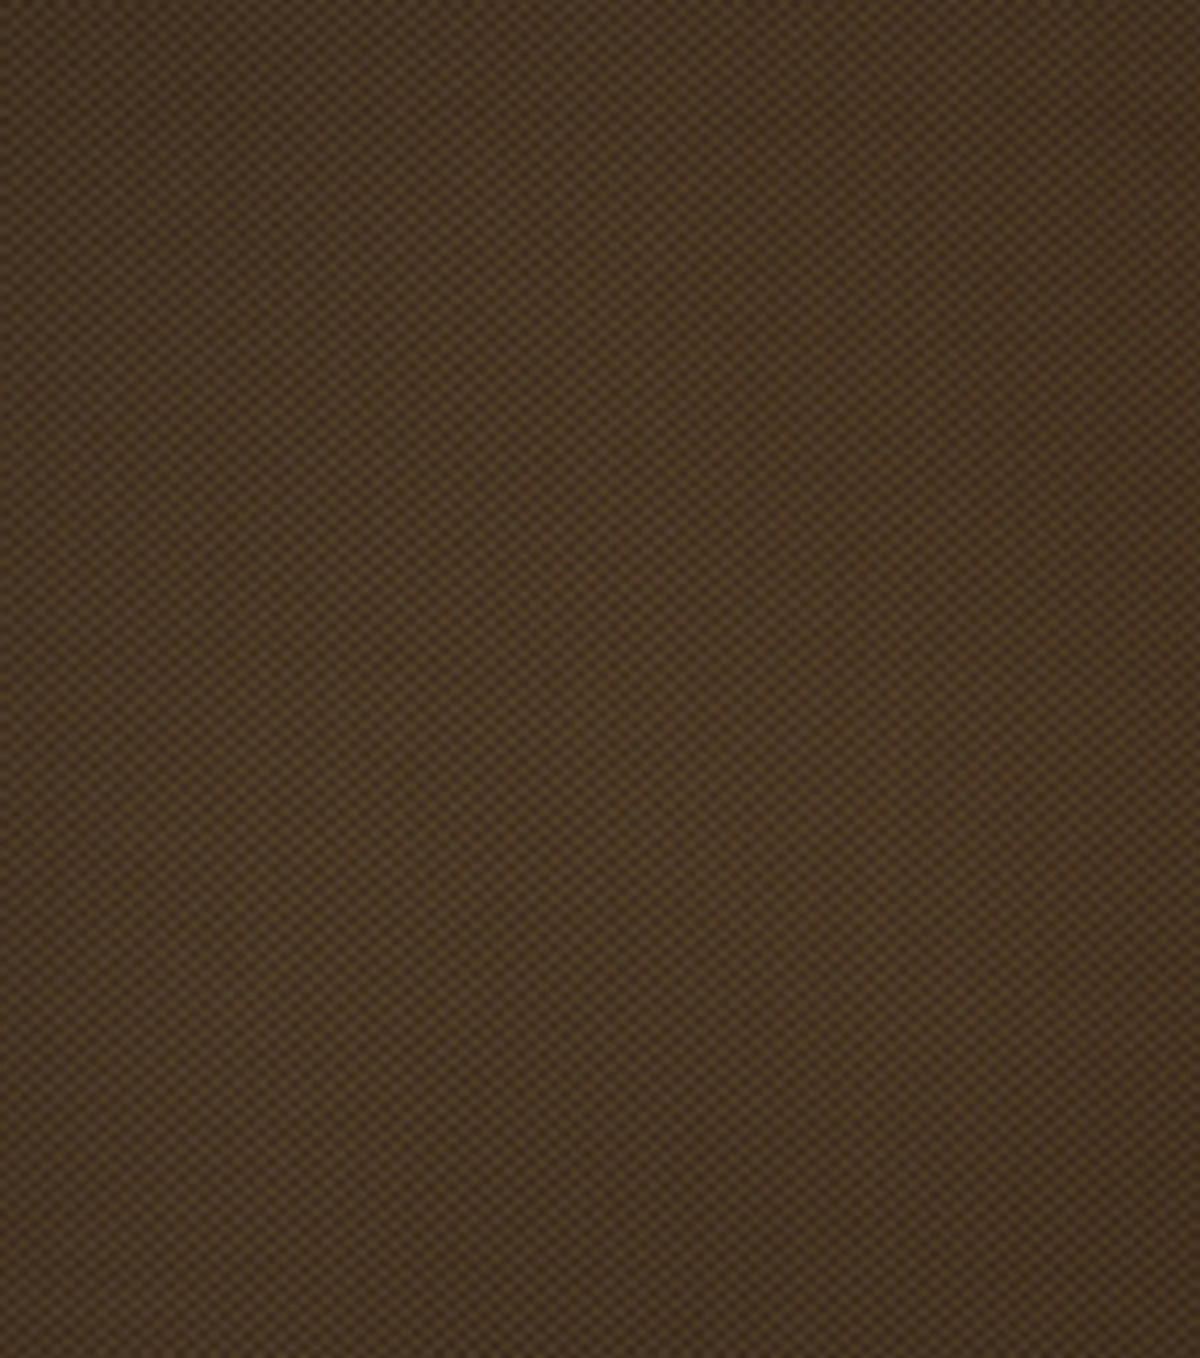 Home Decor 8\u0022x8\u0022 Fabric Swatch-Bella Dura Passenger Umber